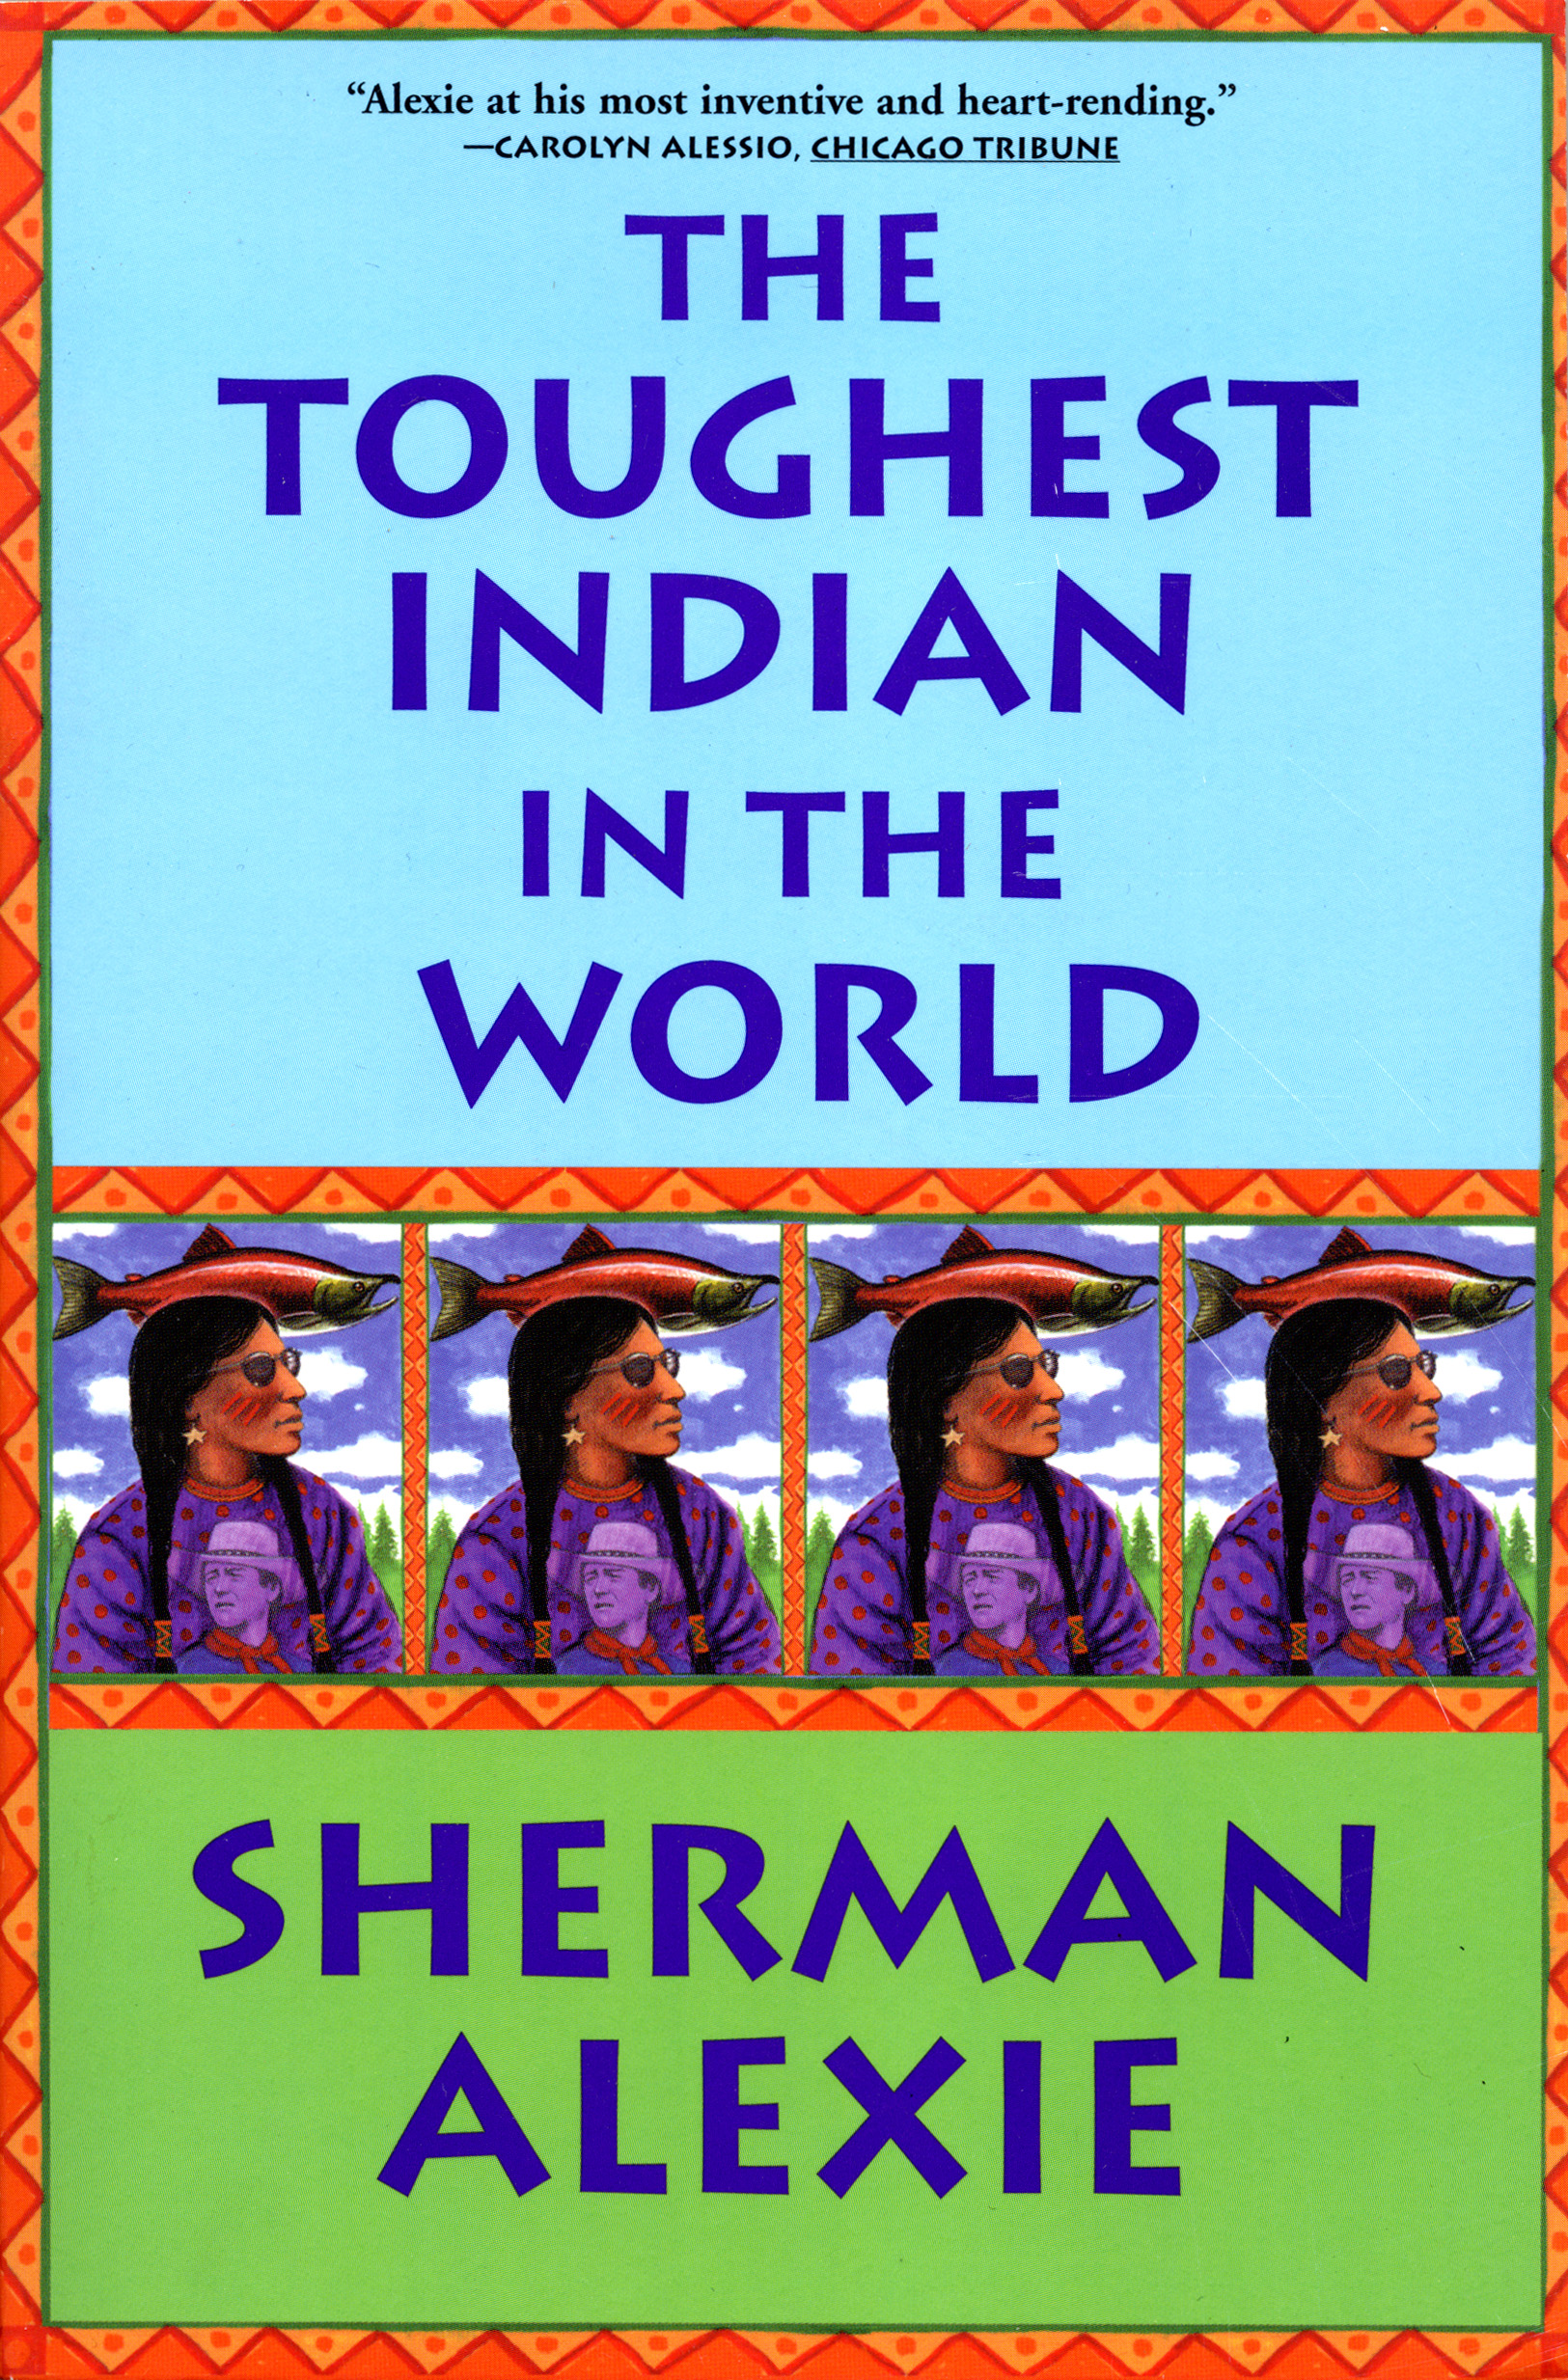 For the record, I am only the 376,124th toughest Indian in the world. Learn more at  Grove .